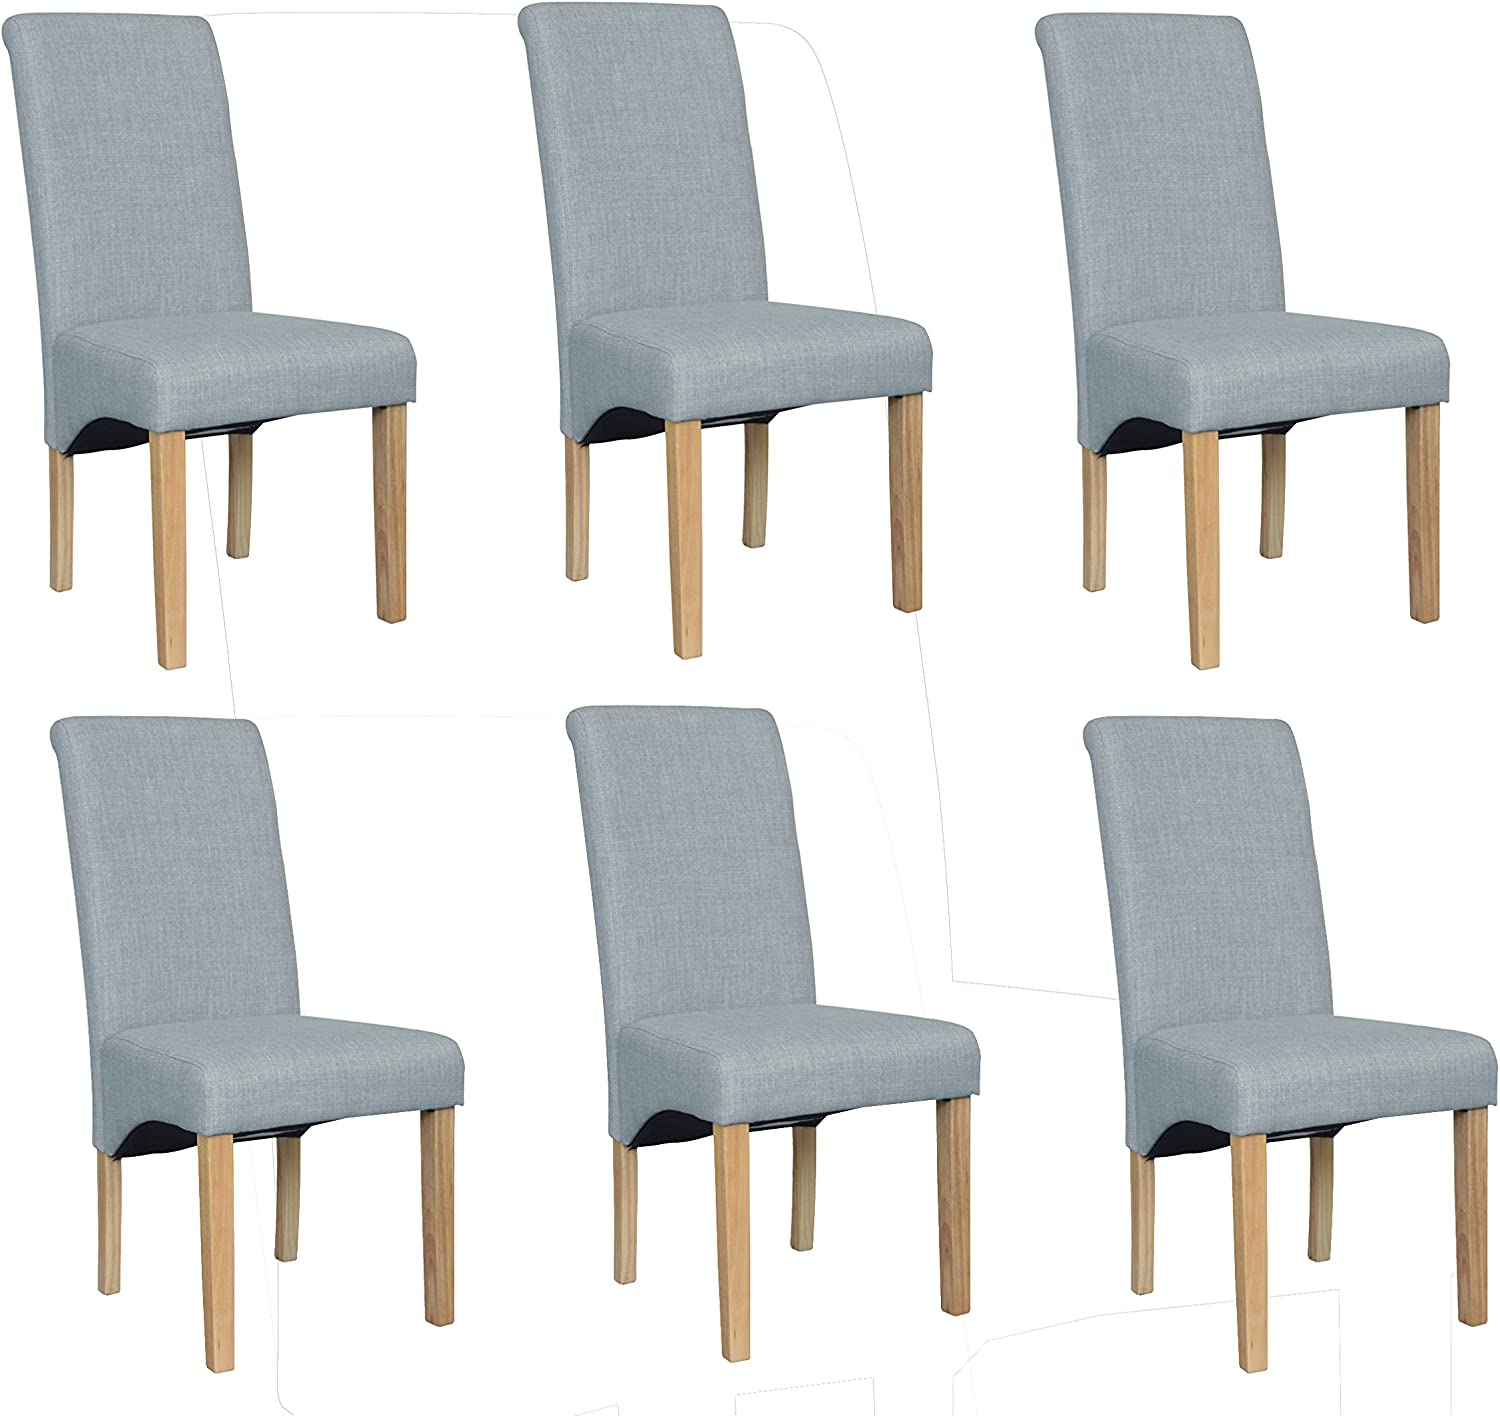 Enjoy Set Of 6 Premium Fabric Linen Dining Chairs Roll Top Scroll High Back With Solid Wood Oak Effect Legs Contemporary Modern Look Light Grey Amazon Co Uk Kitchen Home